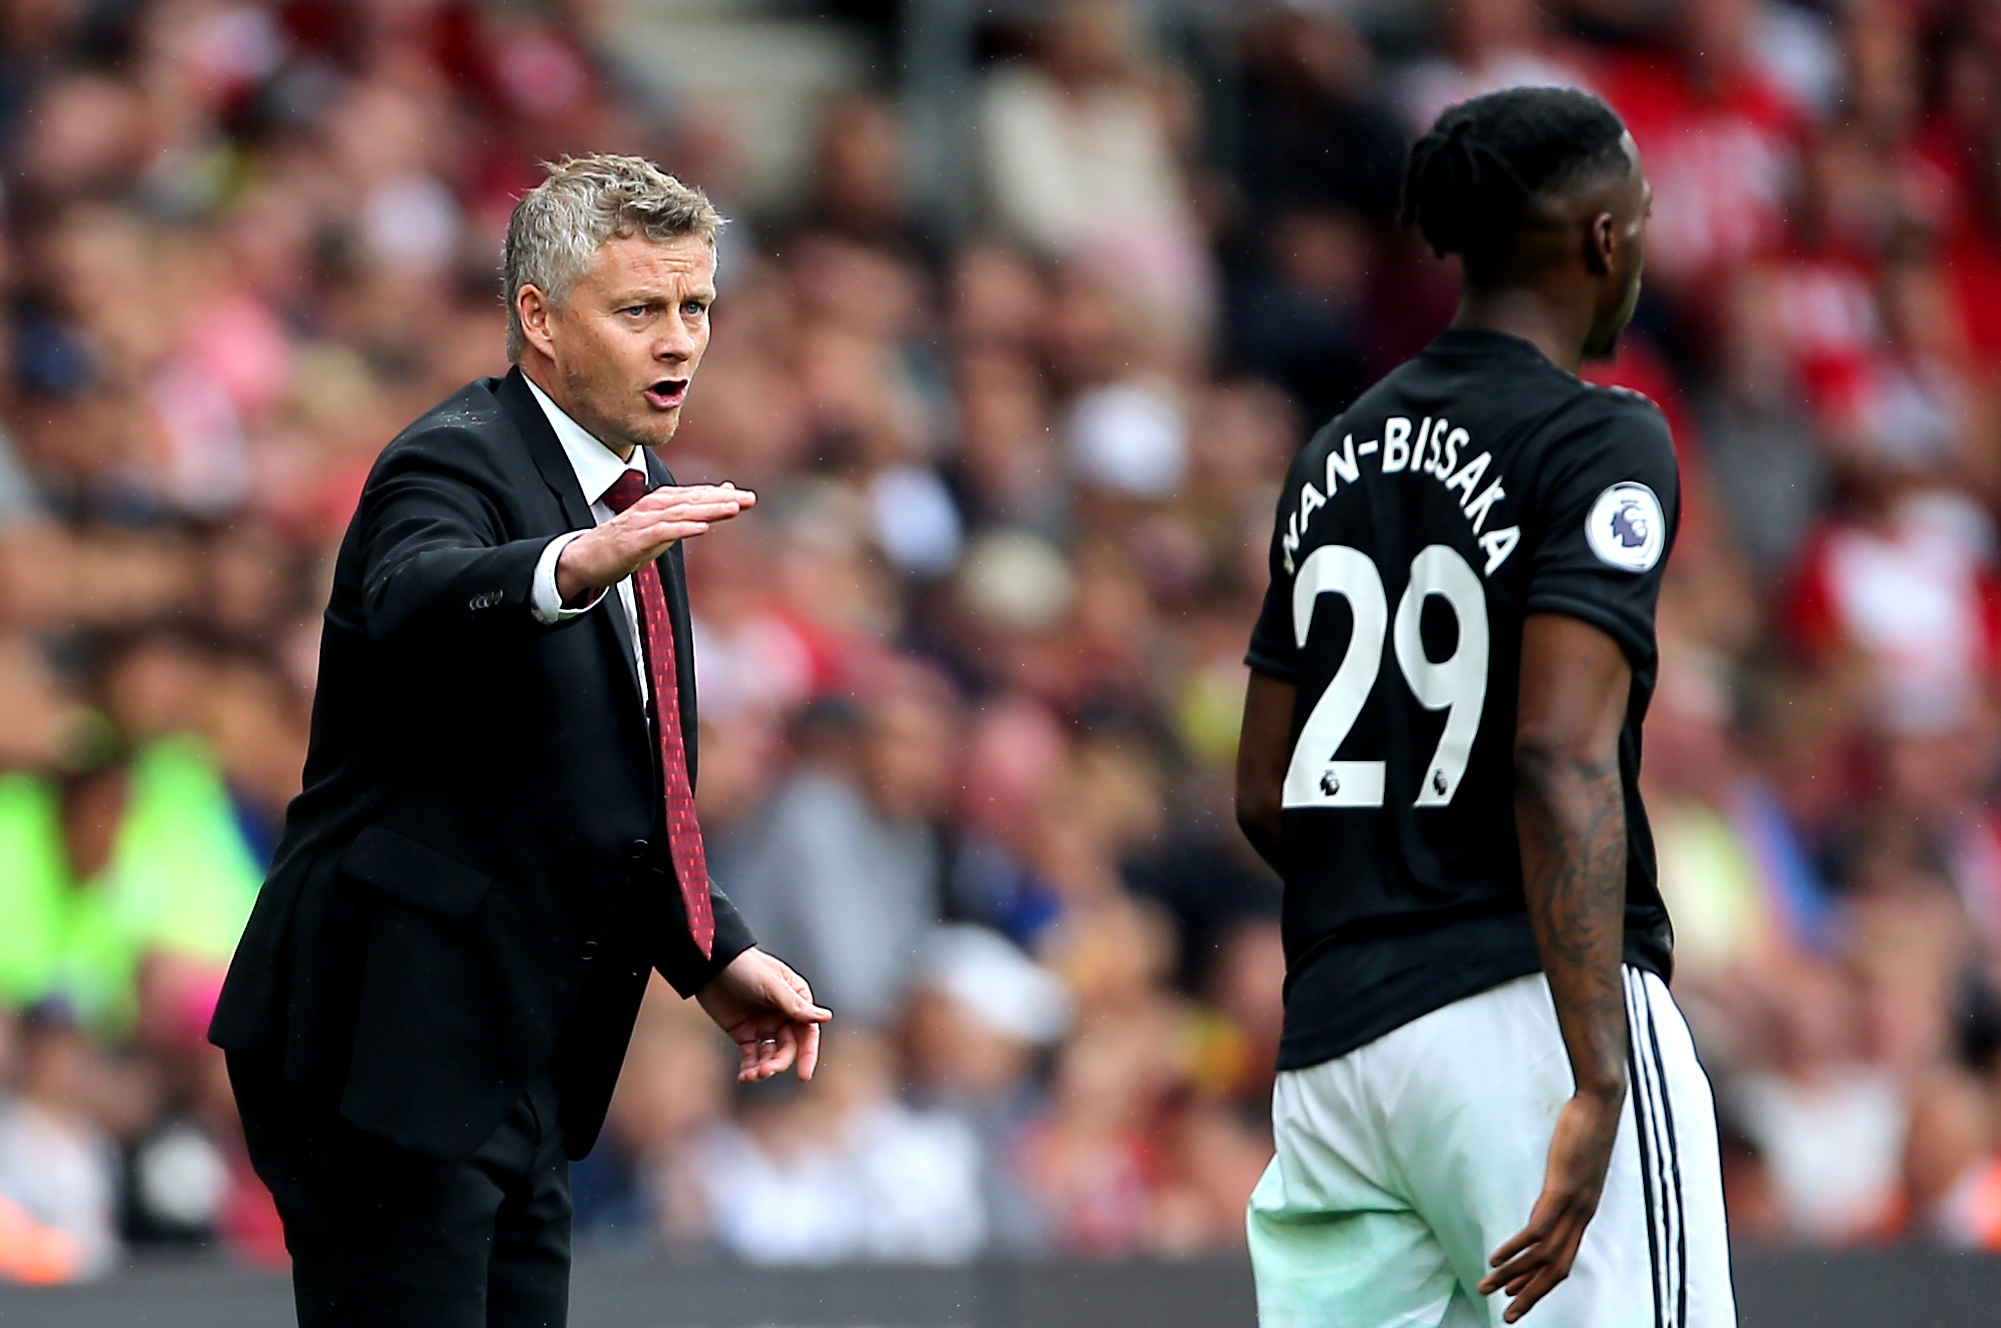 Ole Gunnar Solskjaer, left, may be without Aaron Wan-Bissaka on Saturday